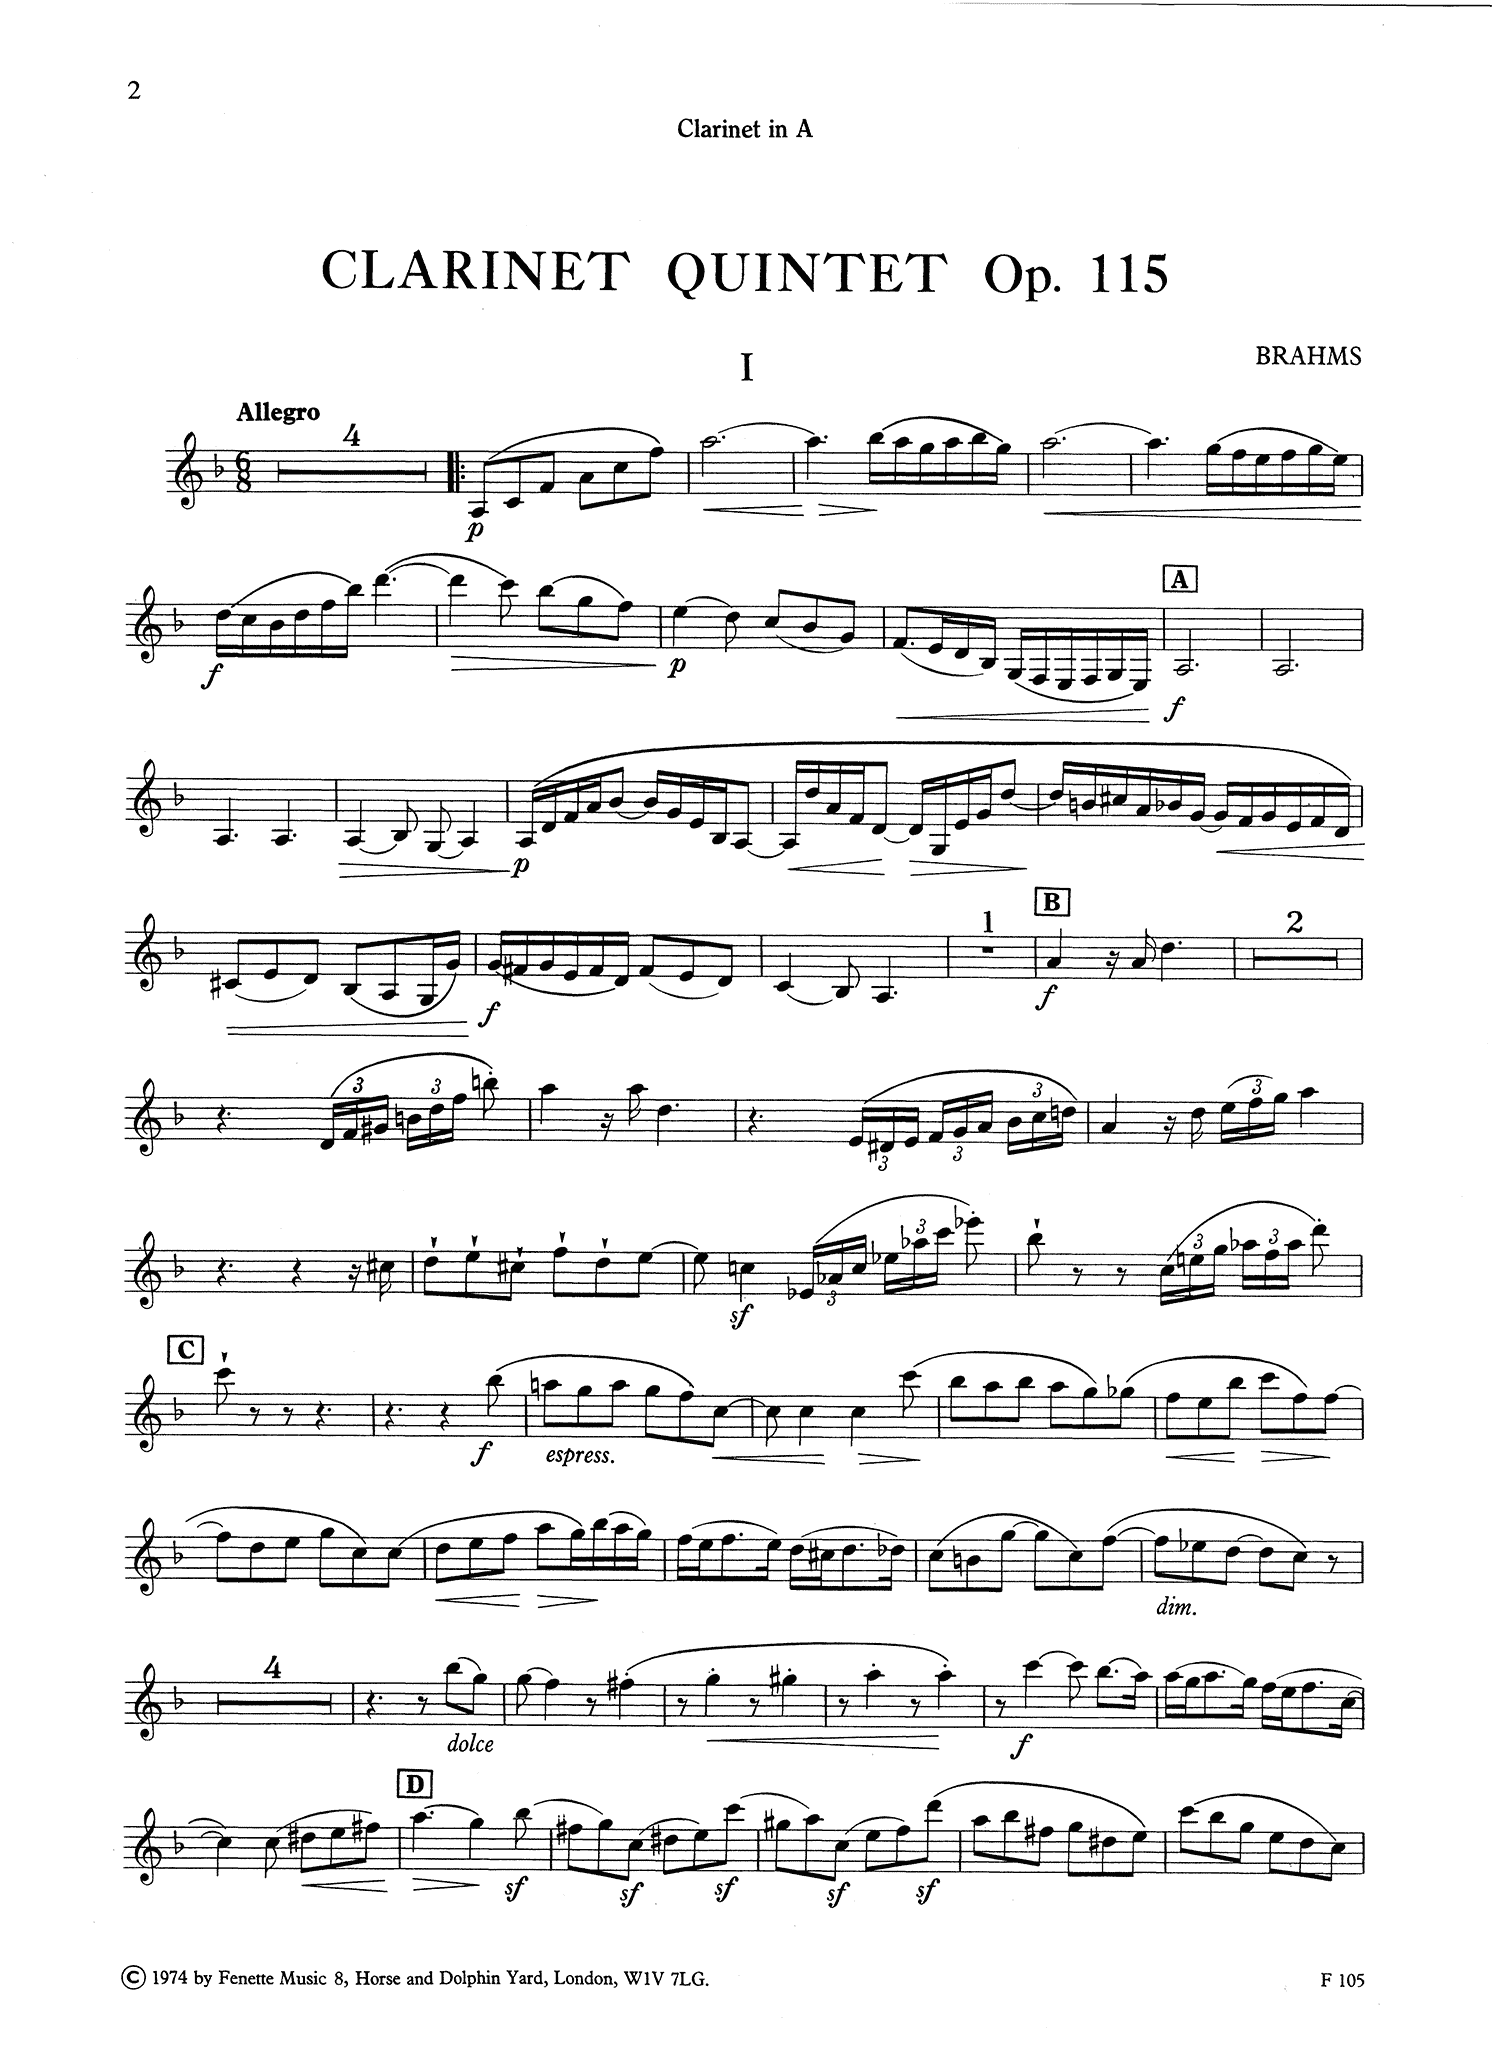 Clarinet Quintet, Op. 115 Clarinet part